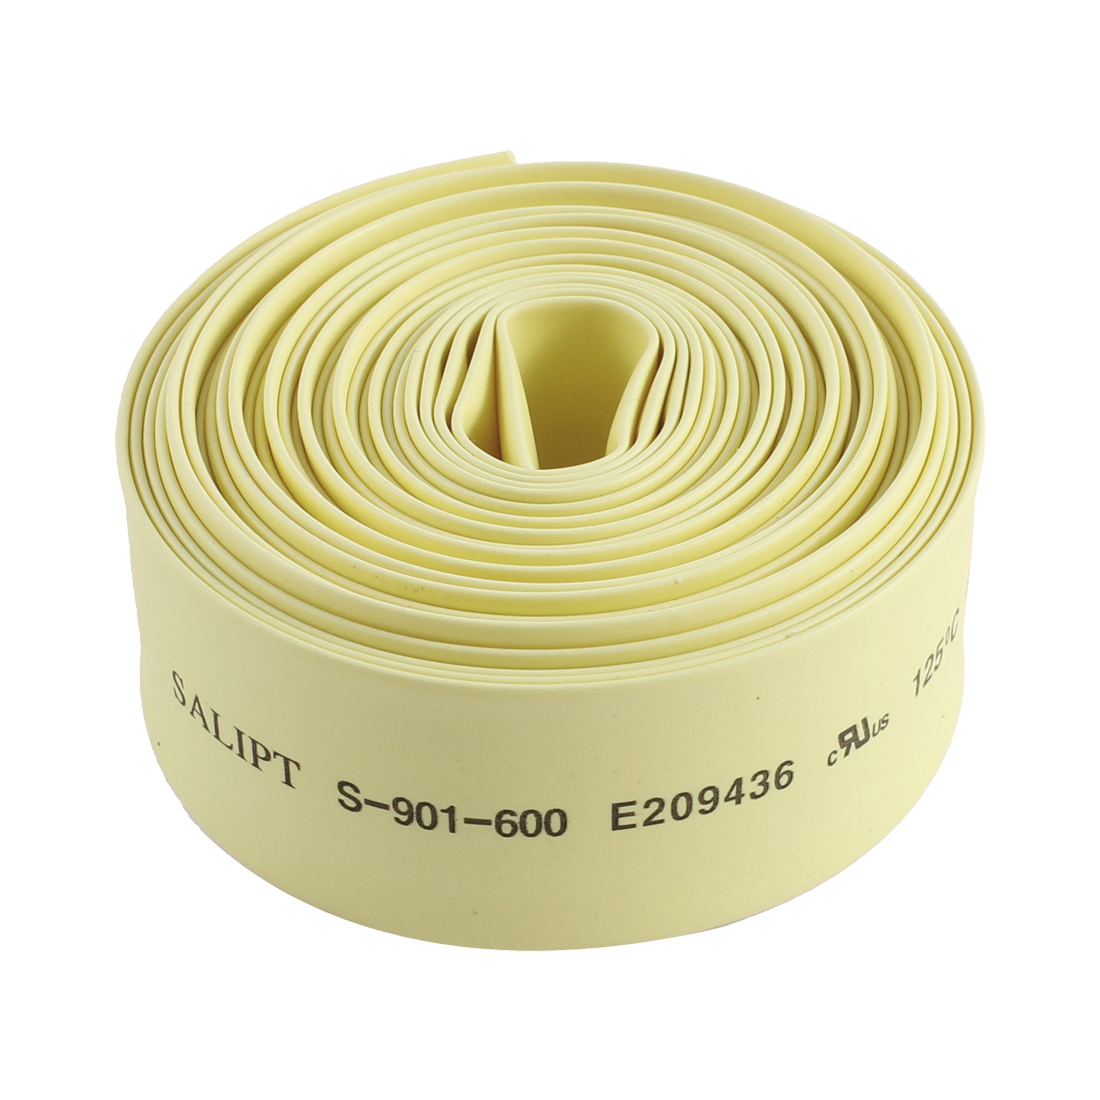 Yellow Polyolefin 16mm Dia 2:1 Heat Shrink Tubing Shrinkable Tube Insulated Pipe Cover 13Ft 4m Long